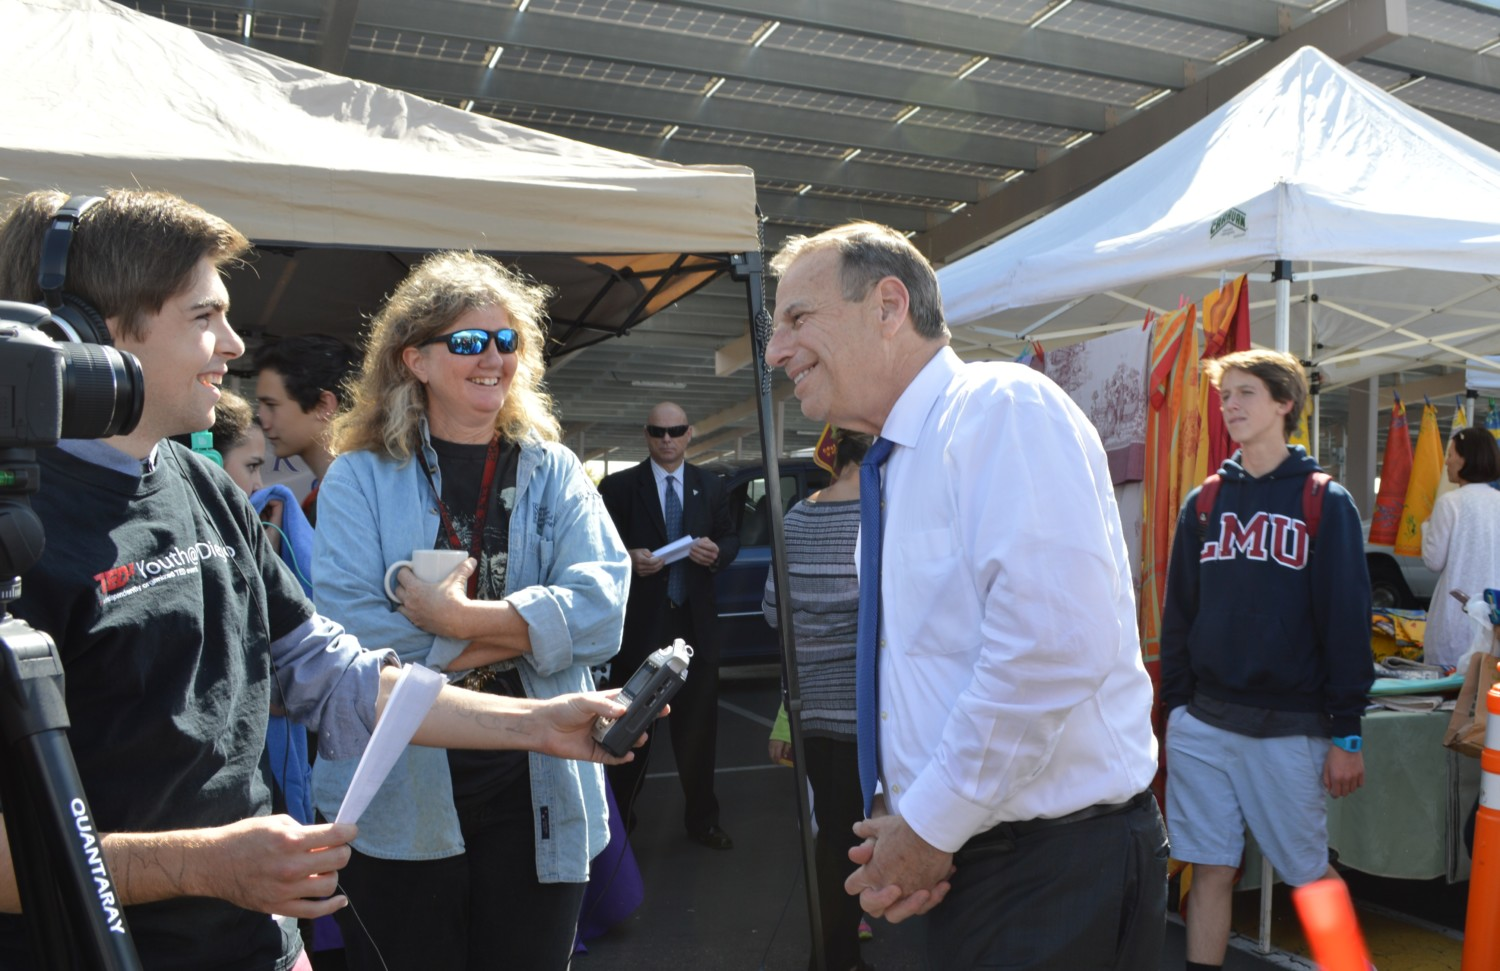 Mayor Filner inaugurates new farmers market at Canyon Crest Academy